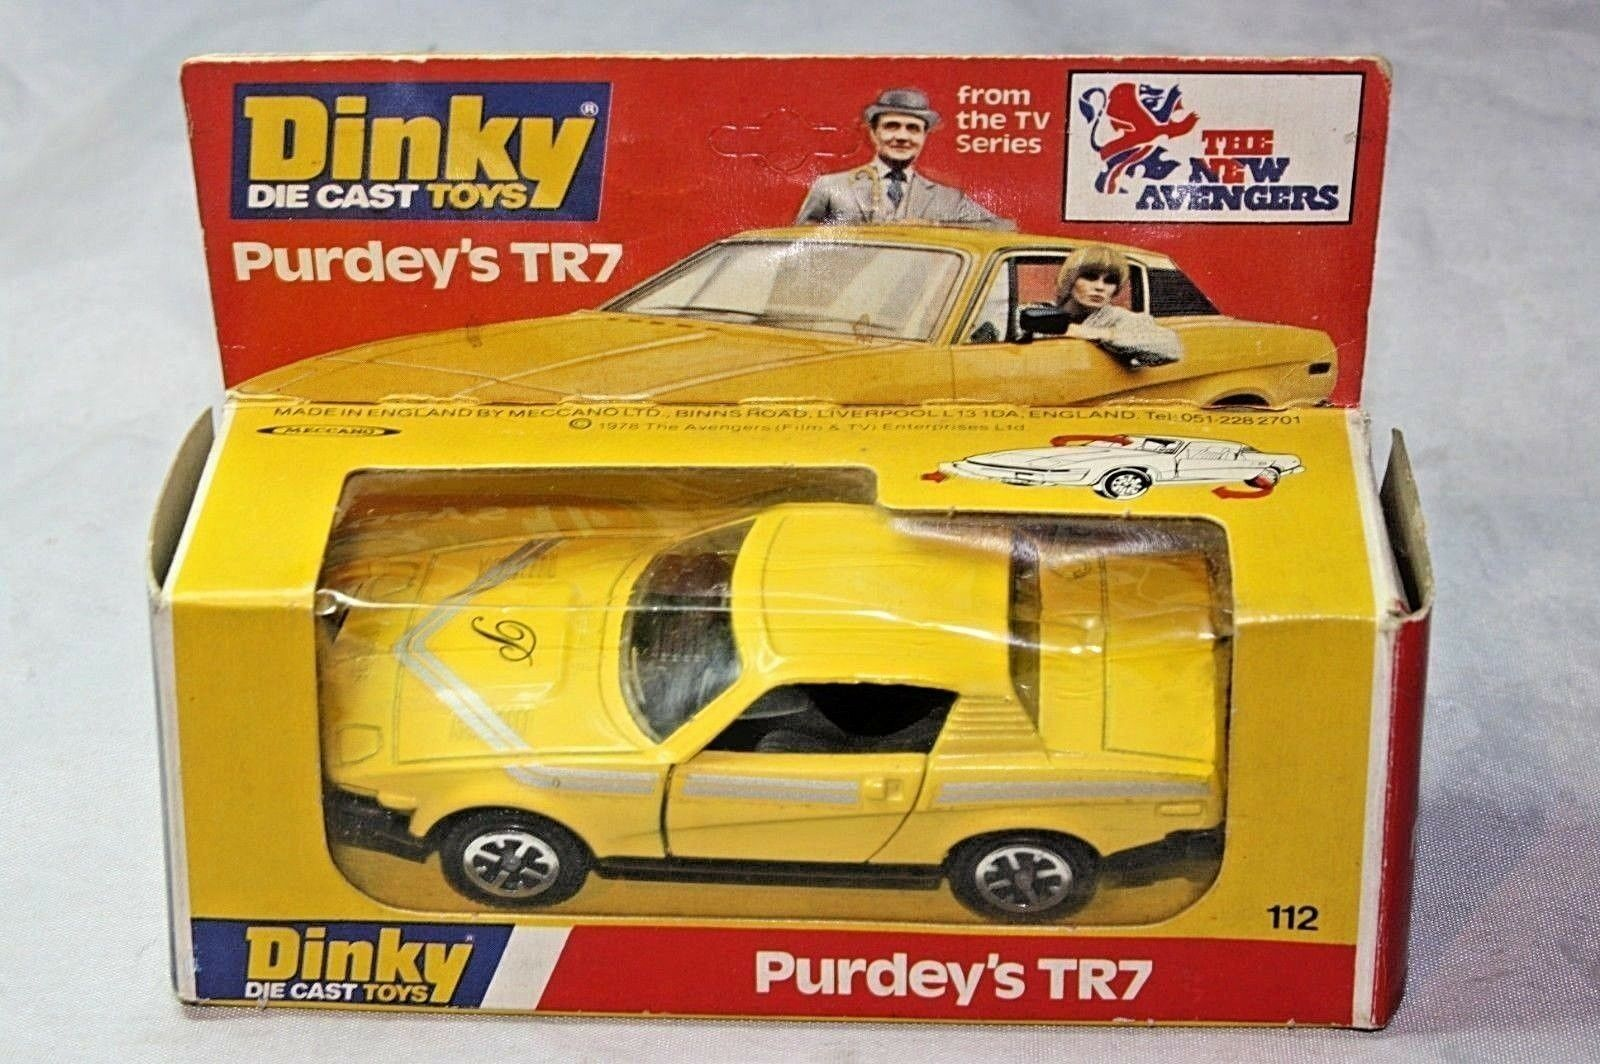 Dinky 112 Purdey's (New Avengers) TR7, Mint in Excellent Original Box